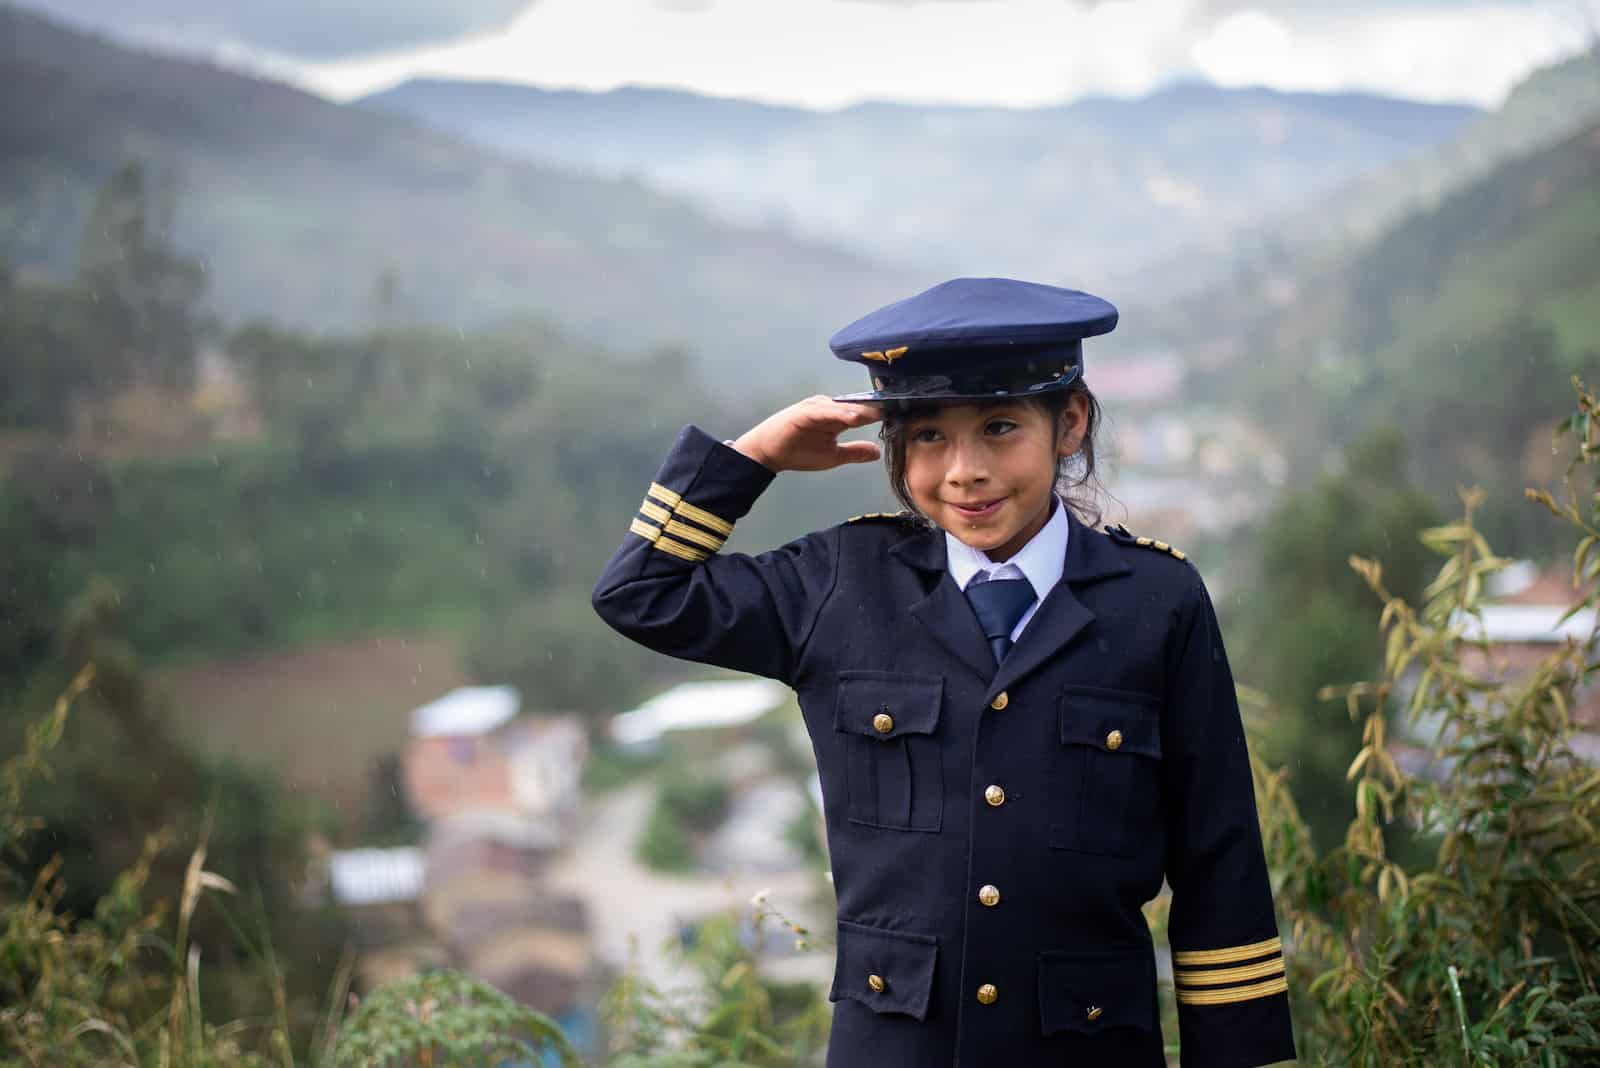 A girl in a blue pilot's uniform and hat salutes. Behind her is a village in a mountain valley.